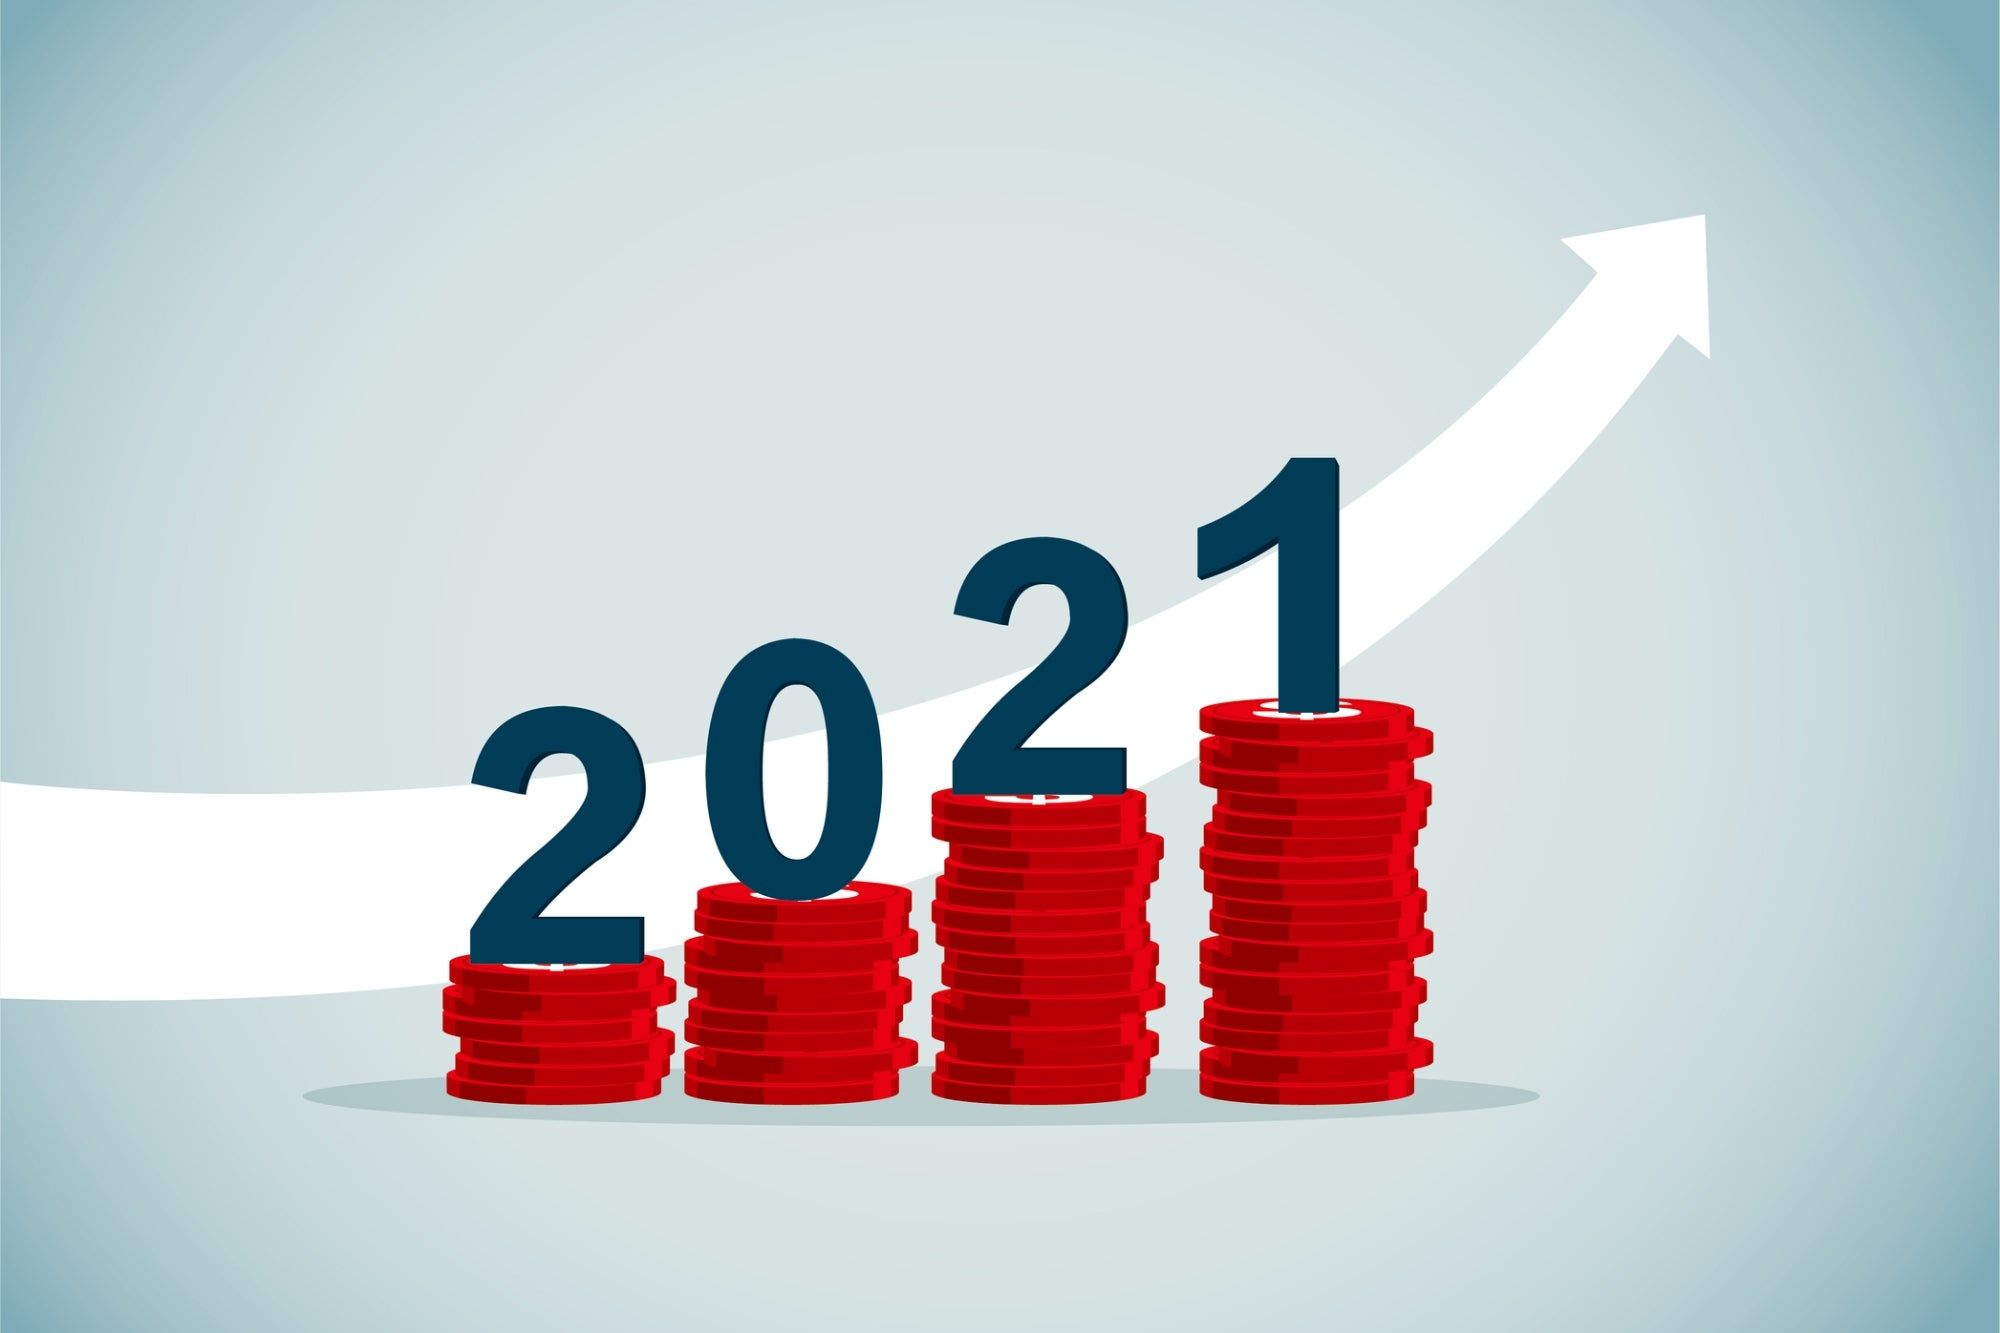 entrepreneur.com - Laura D. Adams - 5 Tips to Stay Focused on Your Financial Goals in 2021